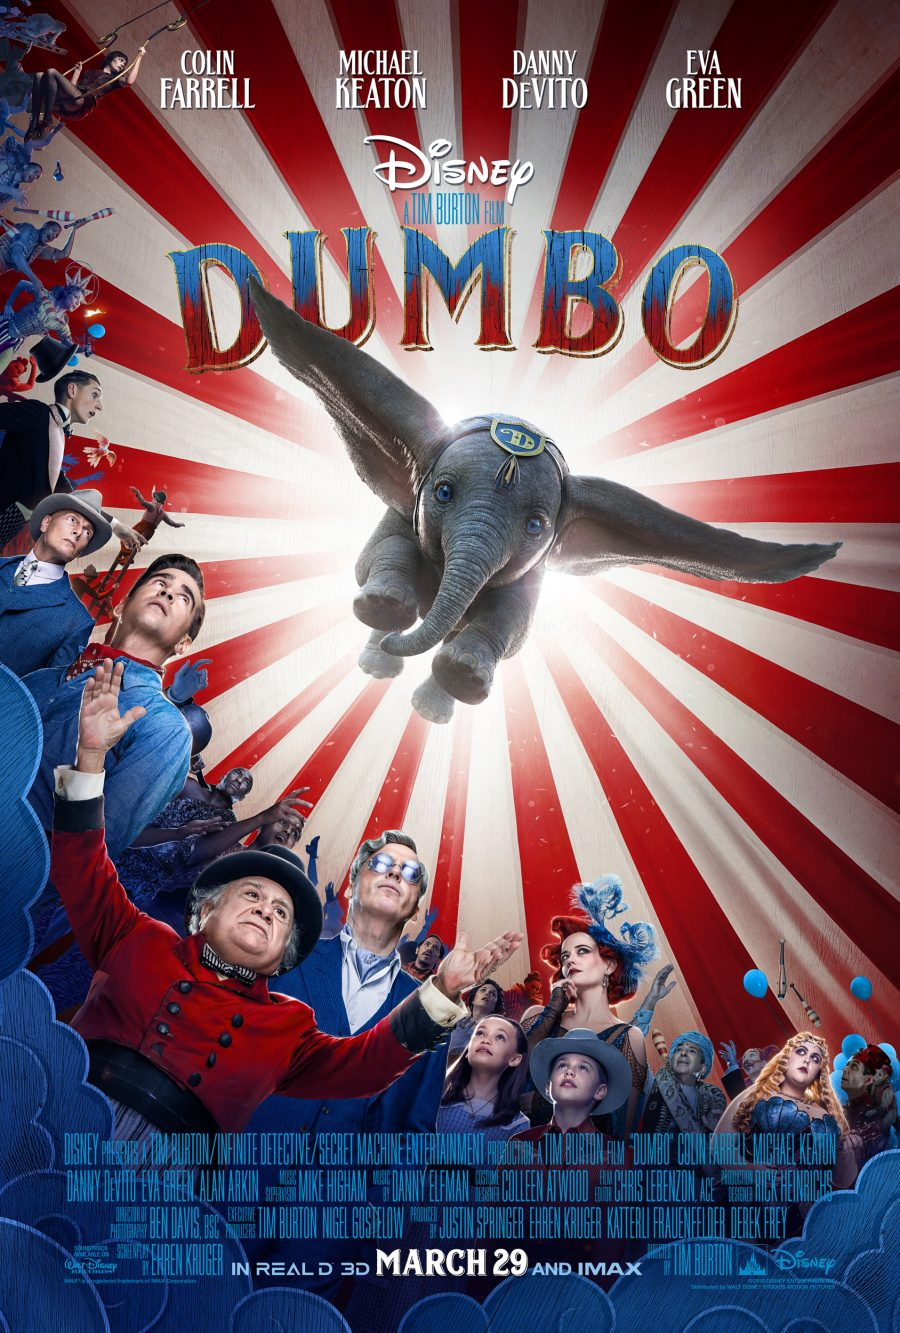 Disney Live Action Dumbo One-sheet Poster